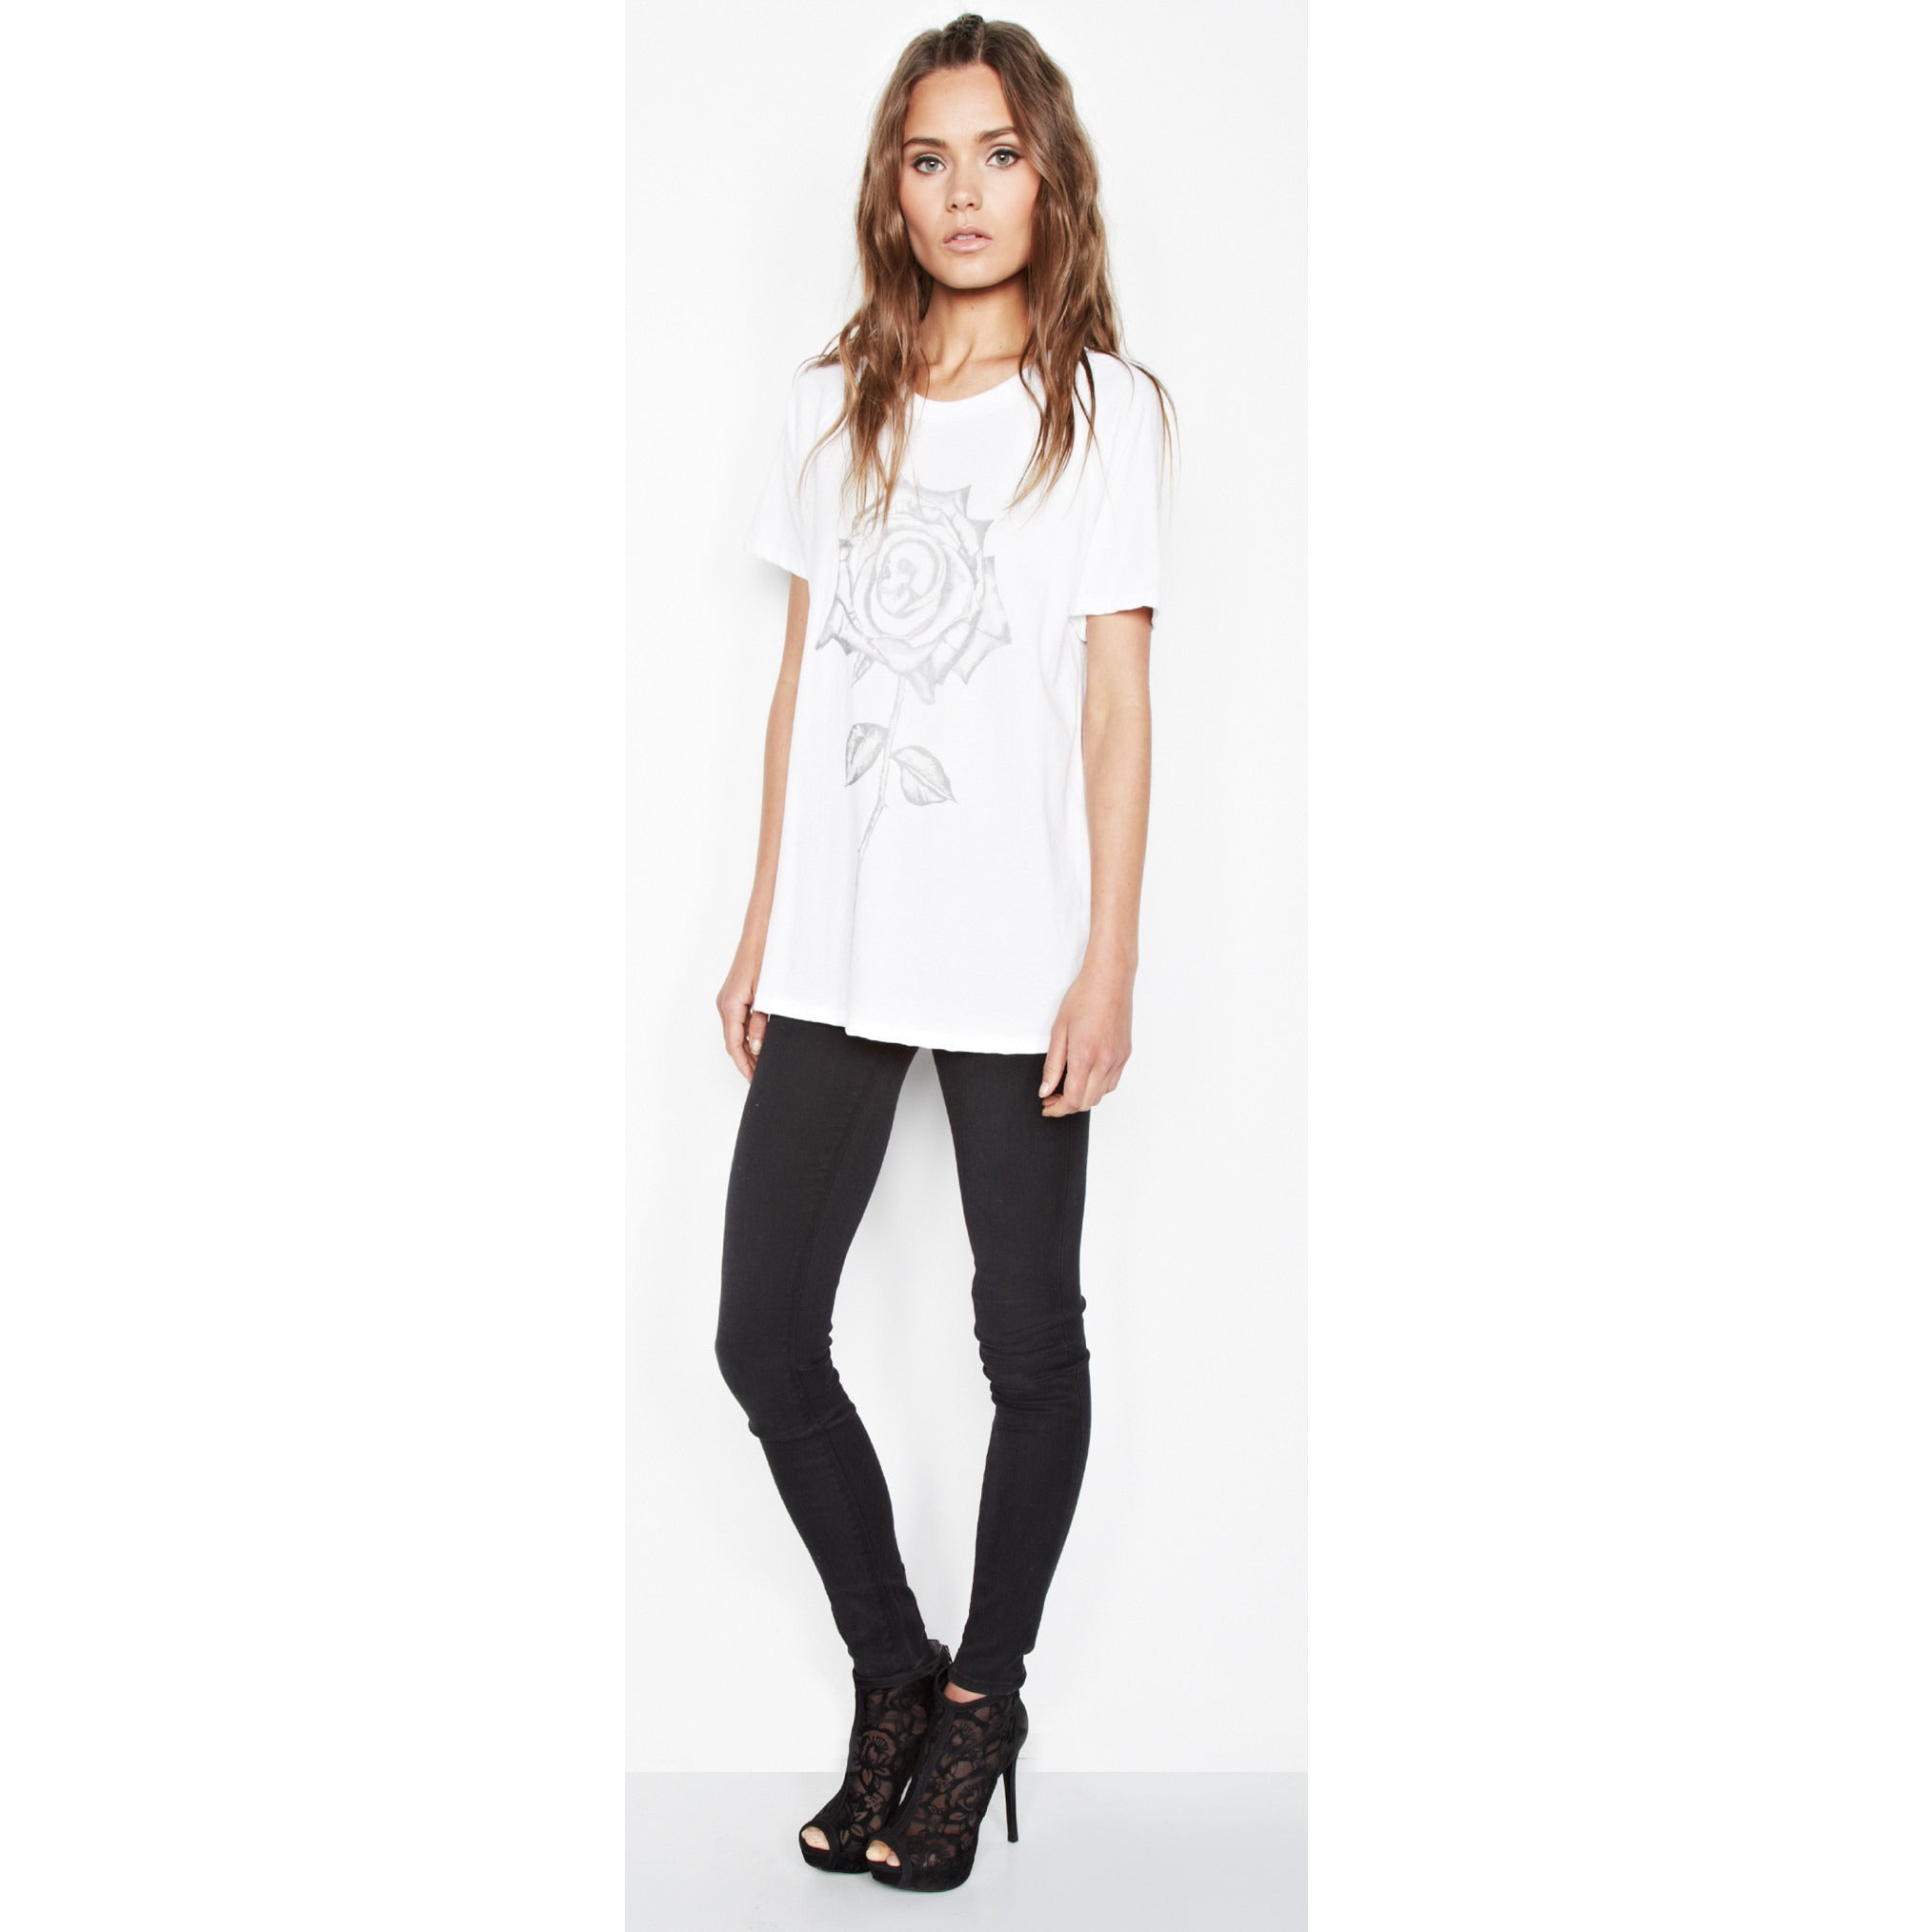 Janie Short Sleeve in White Skull Rose